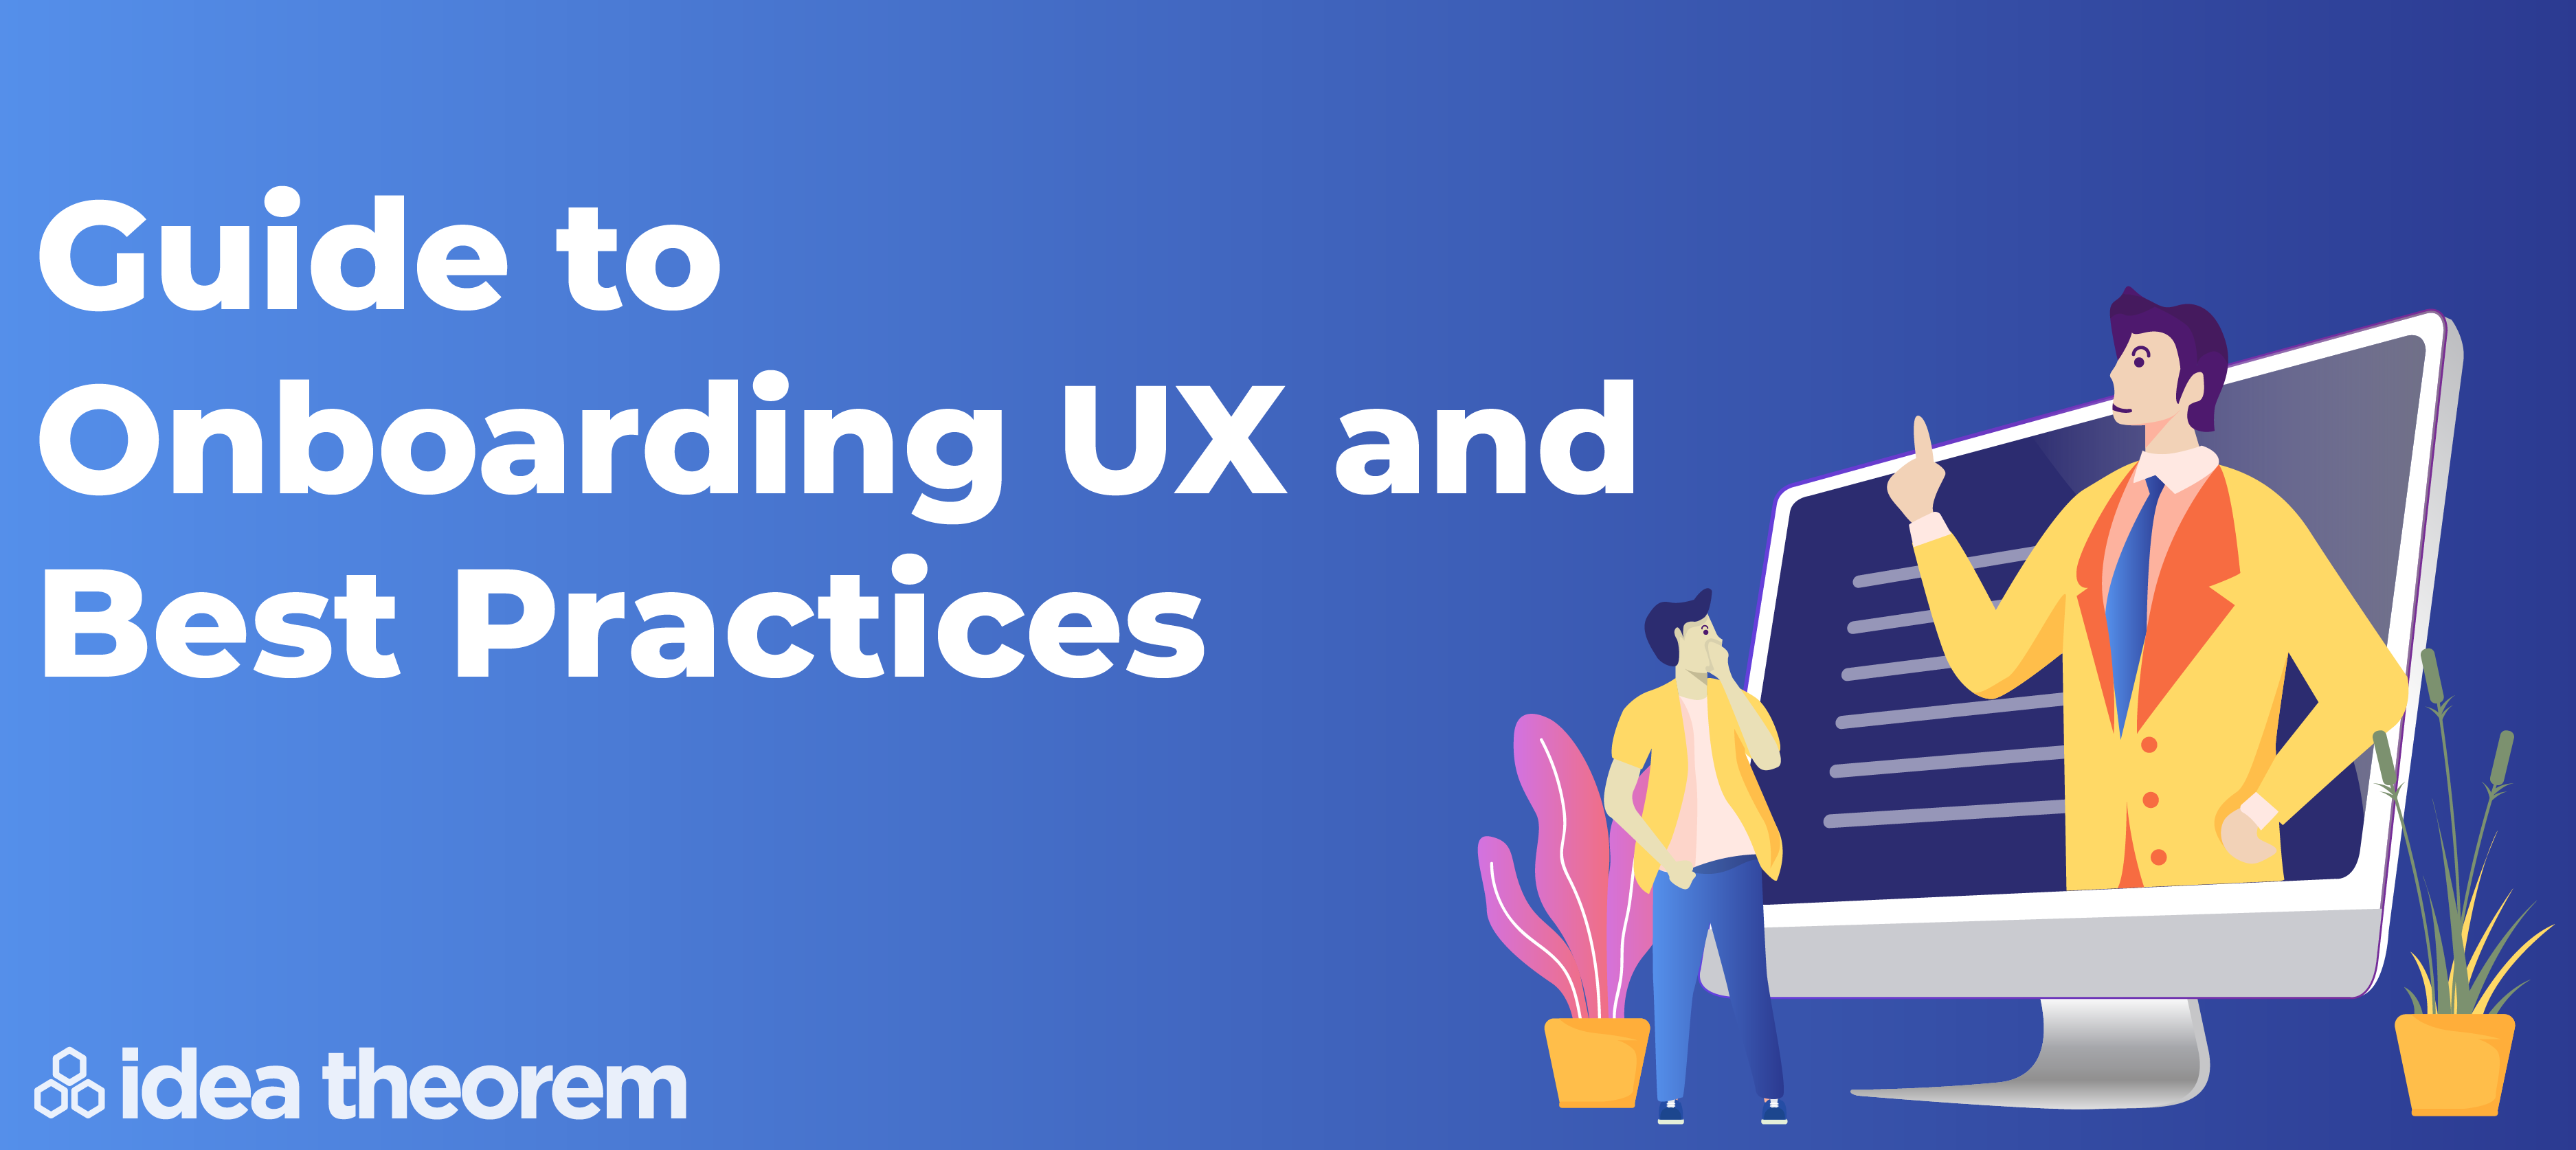 Guide to Onboarding UX and Best Practices